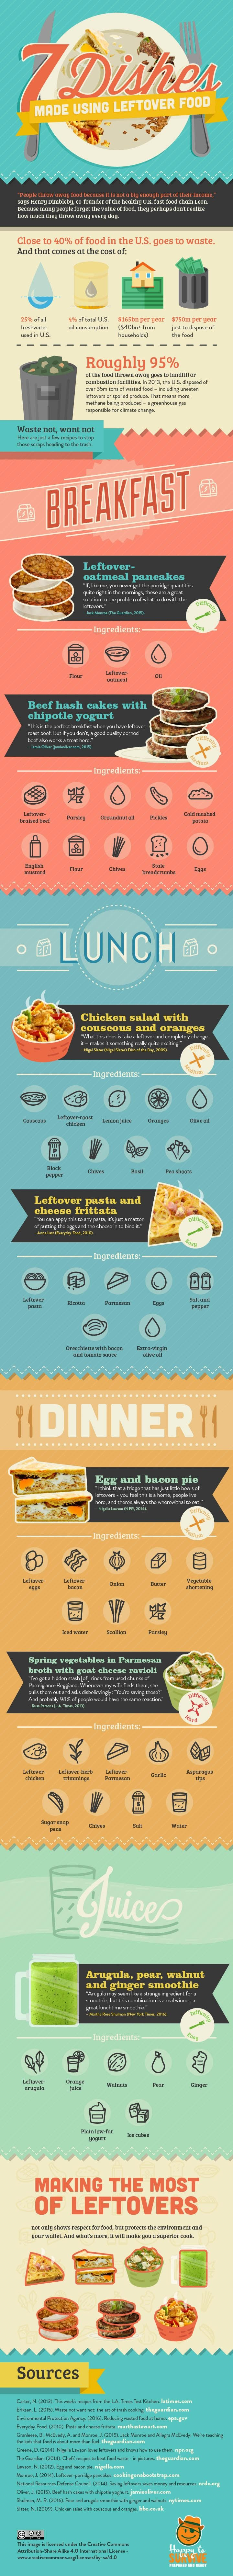 7 Dishes Made Using Leftover Food #infographic